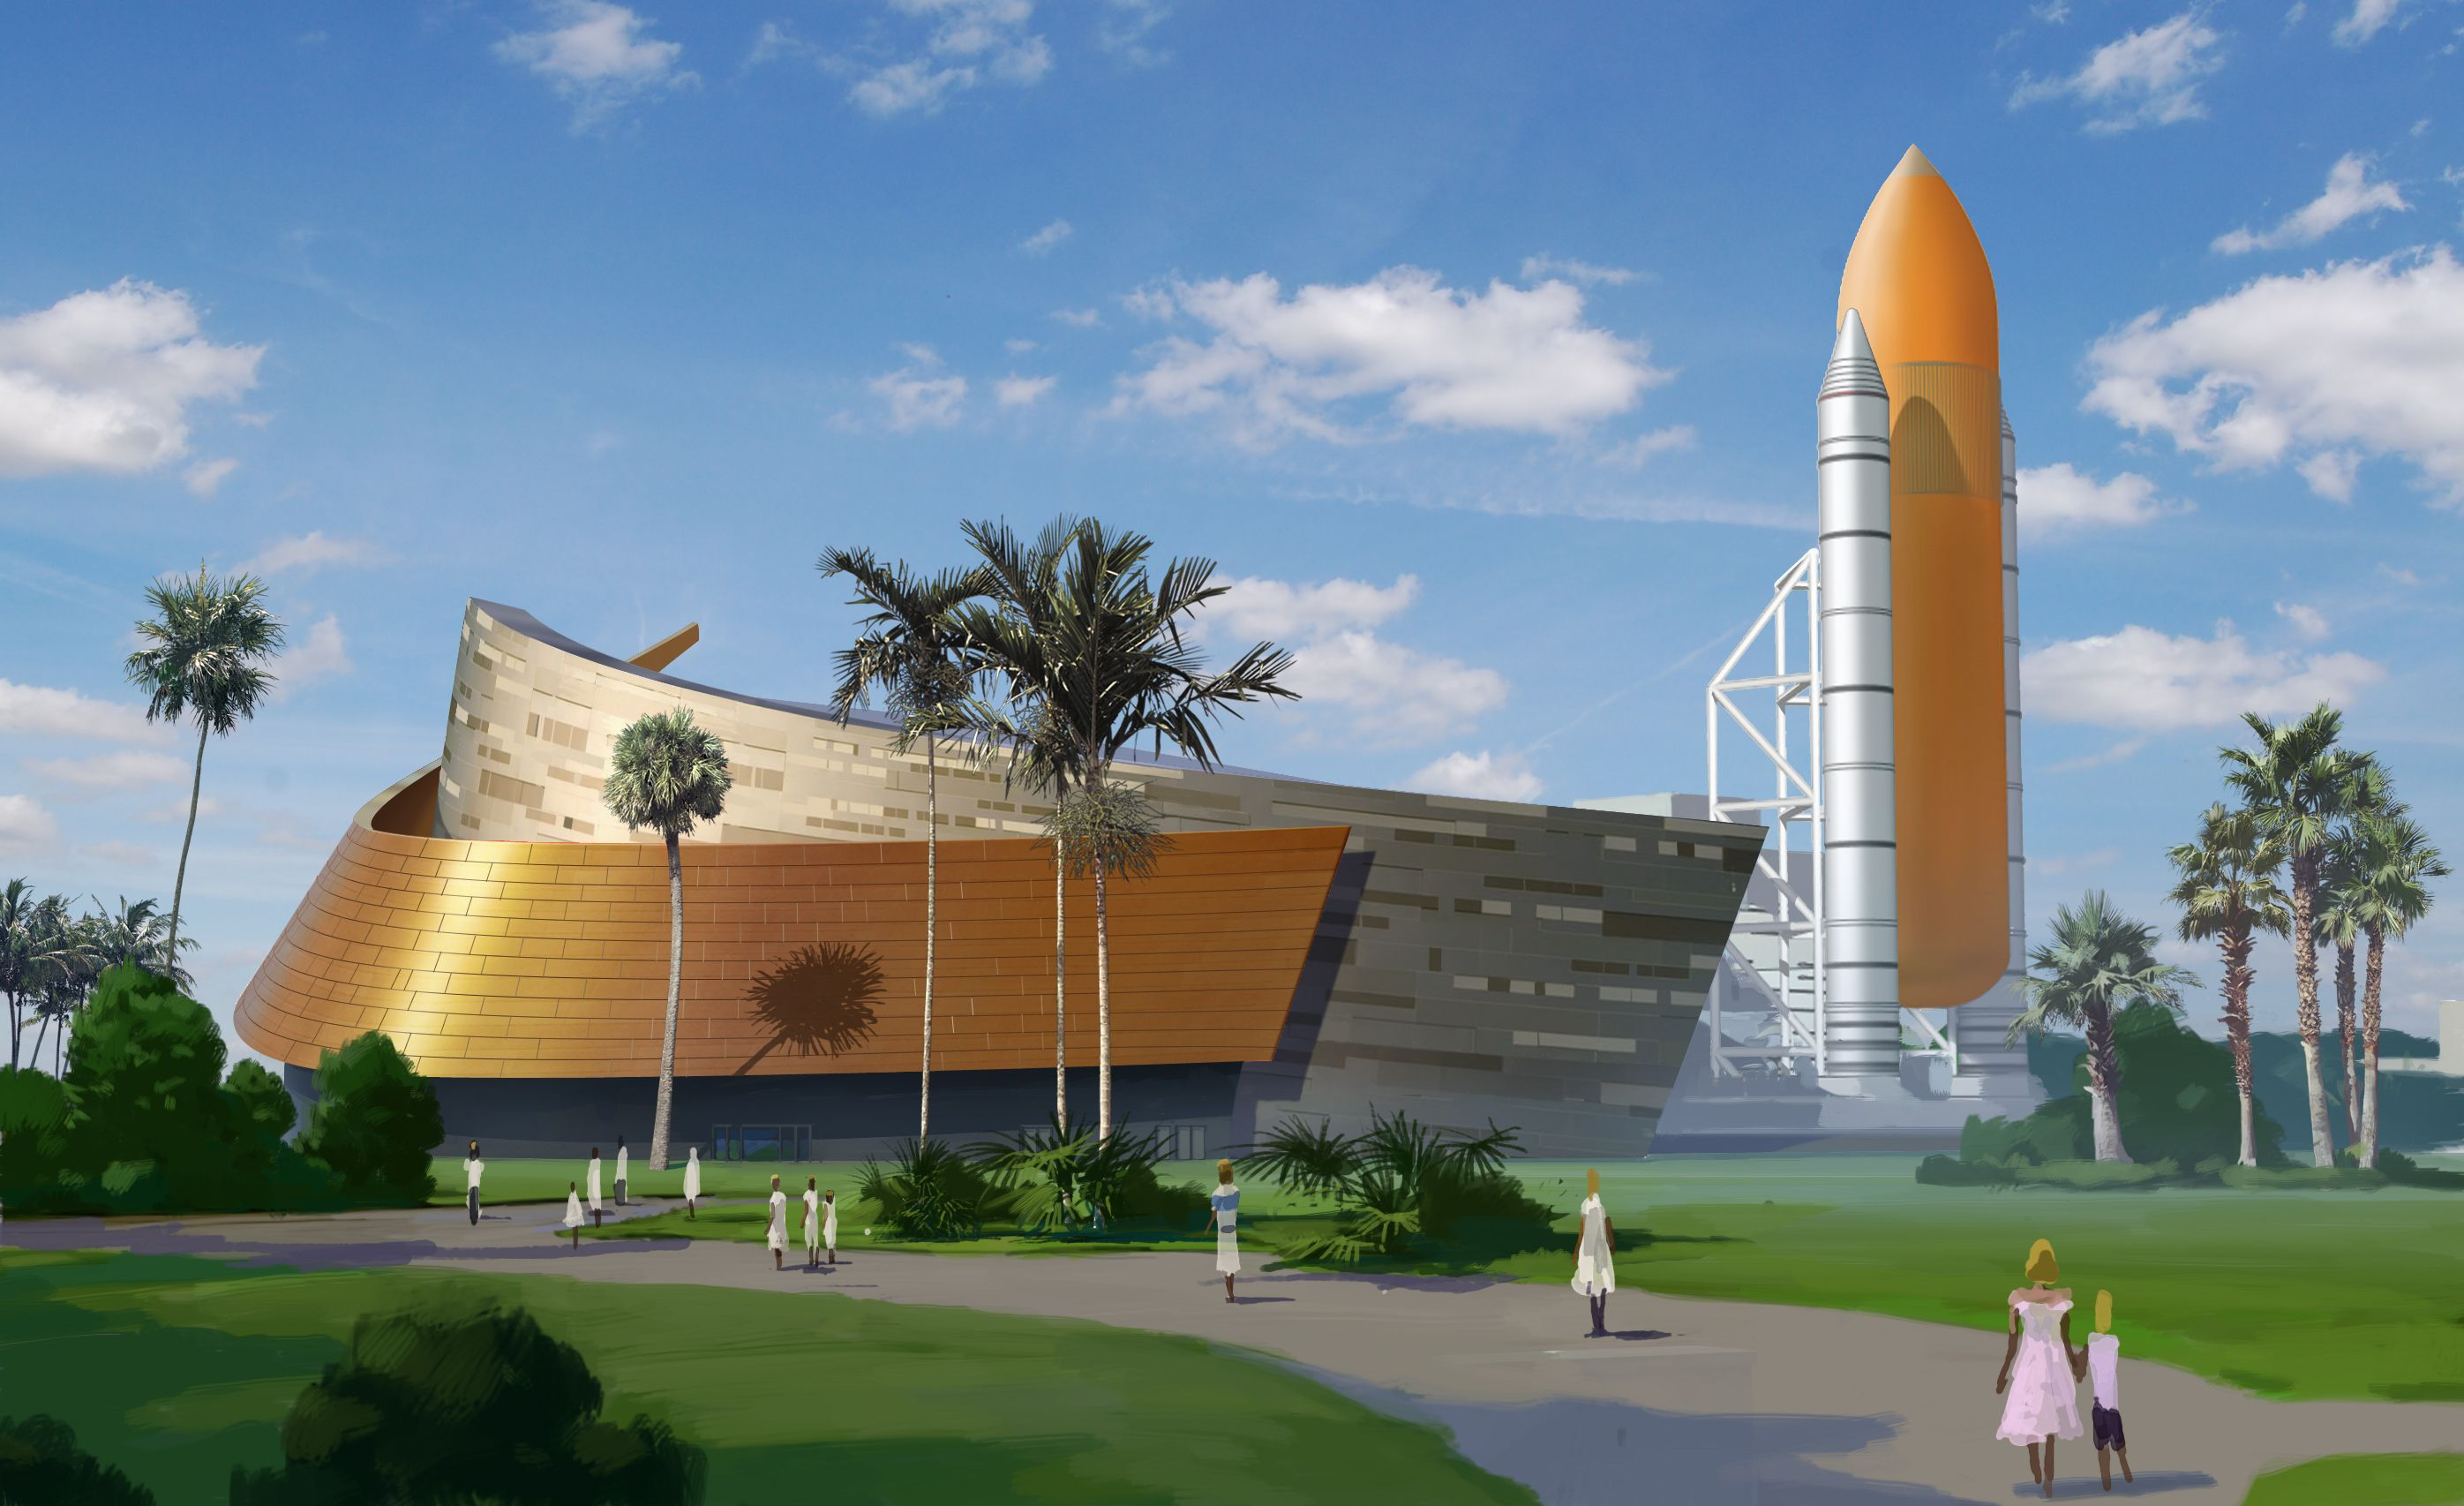 http://media.kennedyspacecenter.com/kennedy/multimedia/photos/atlantis-groundbreaking-images/